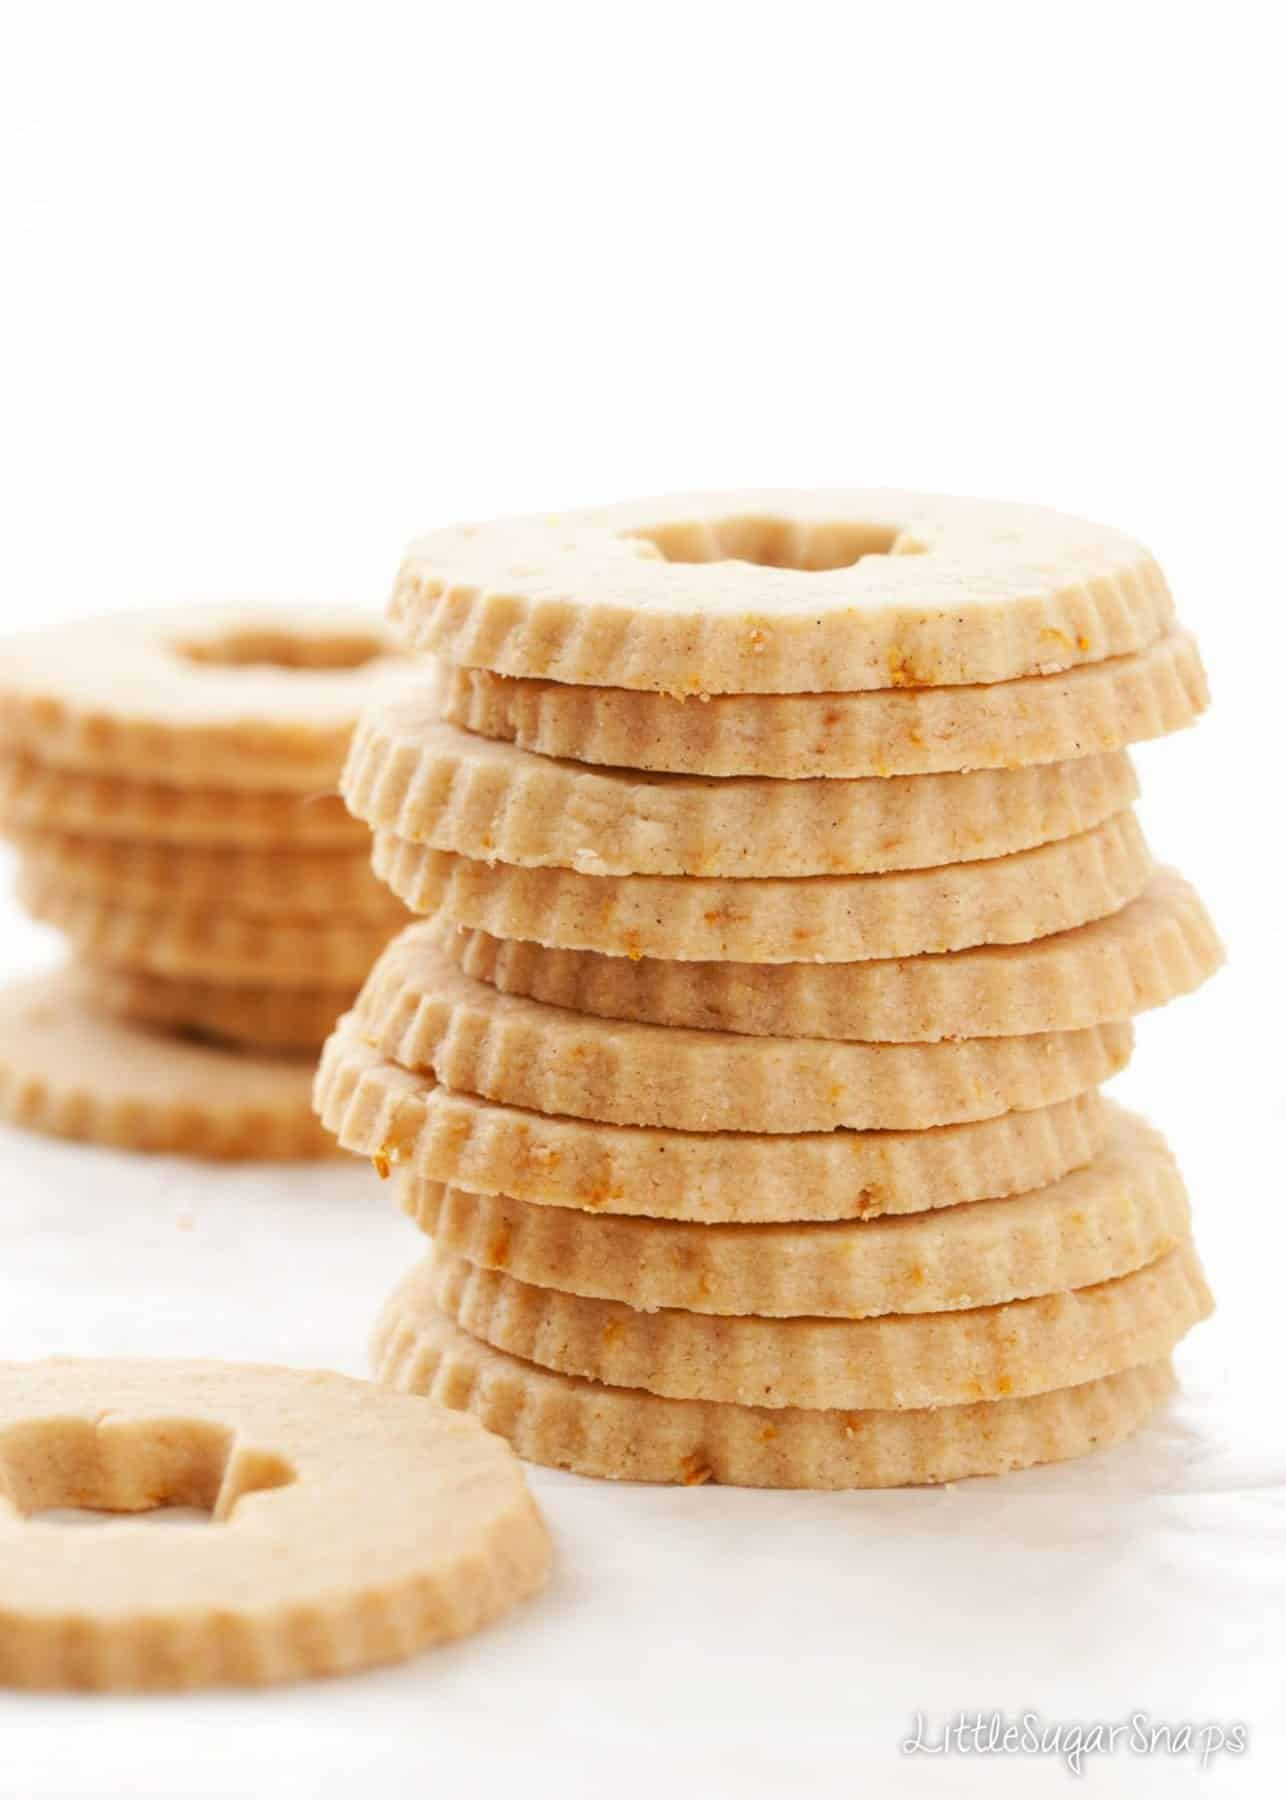 A stack of fluted edge circular biscuits holes in the centres